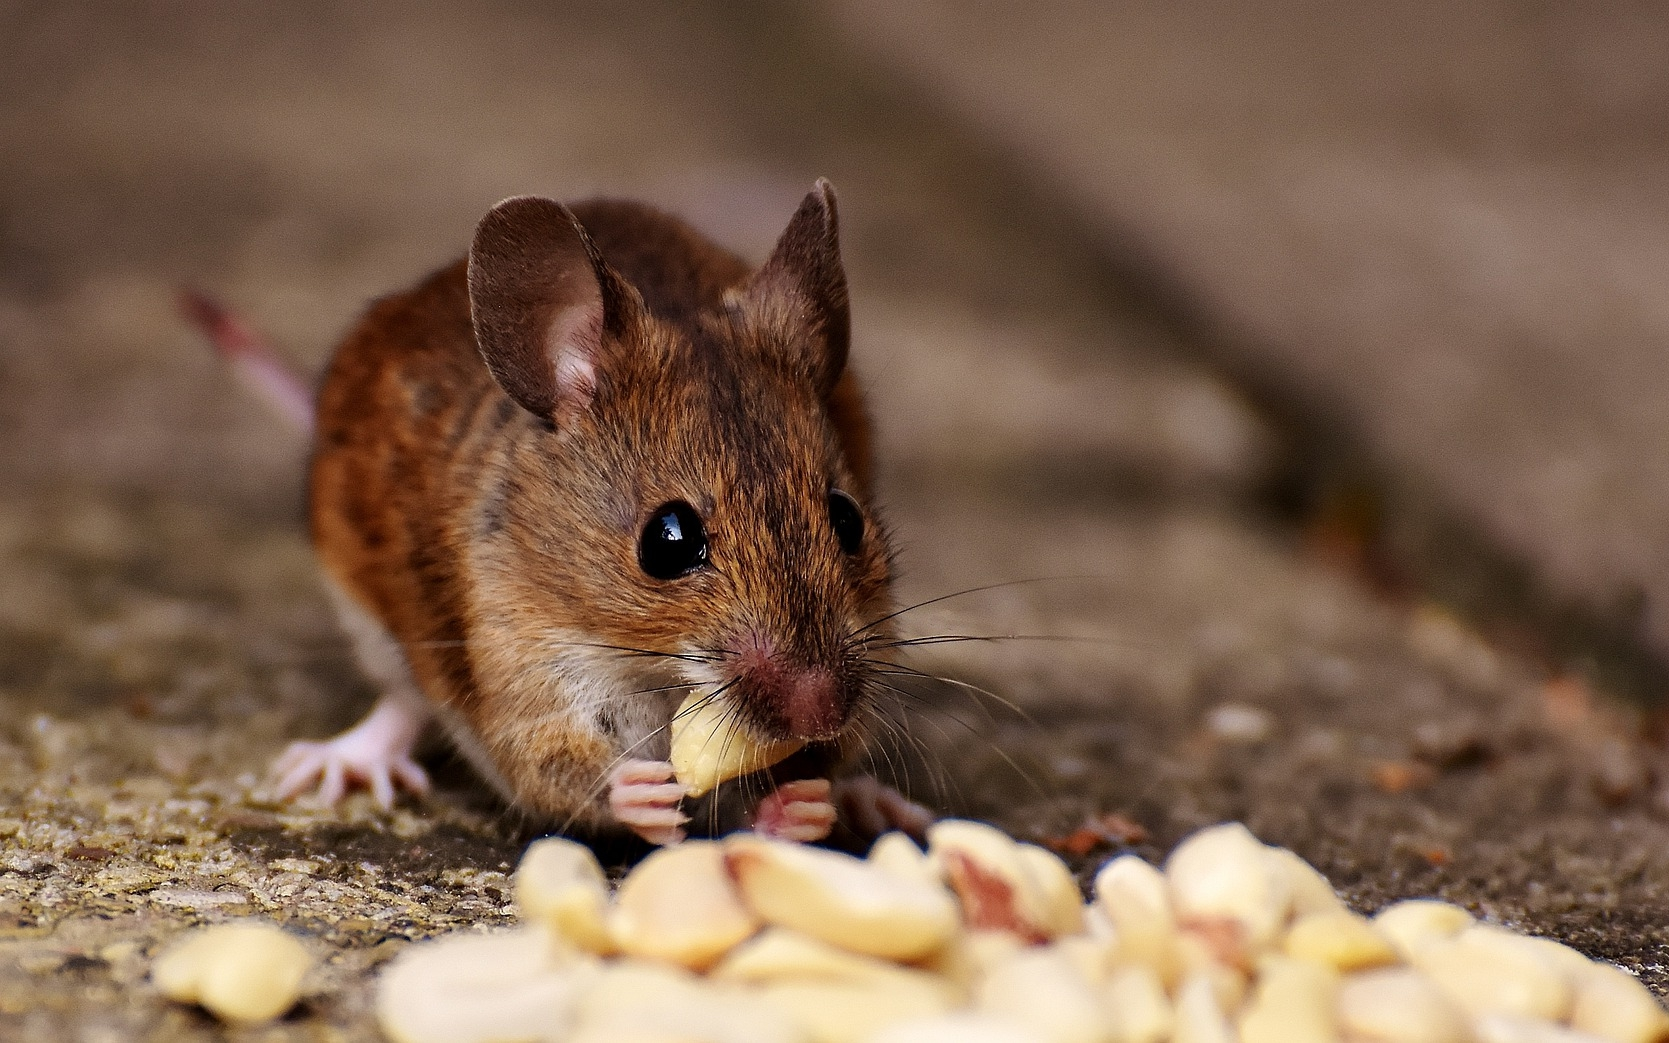 Mice How To Identity And Get Rid Of Mice In The Garden And Home